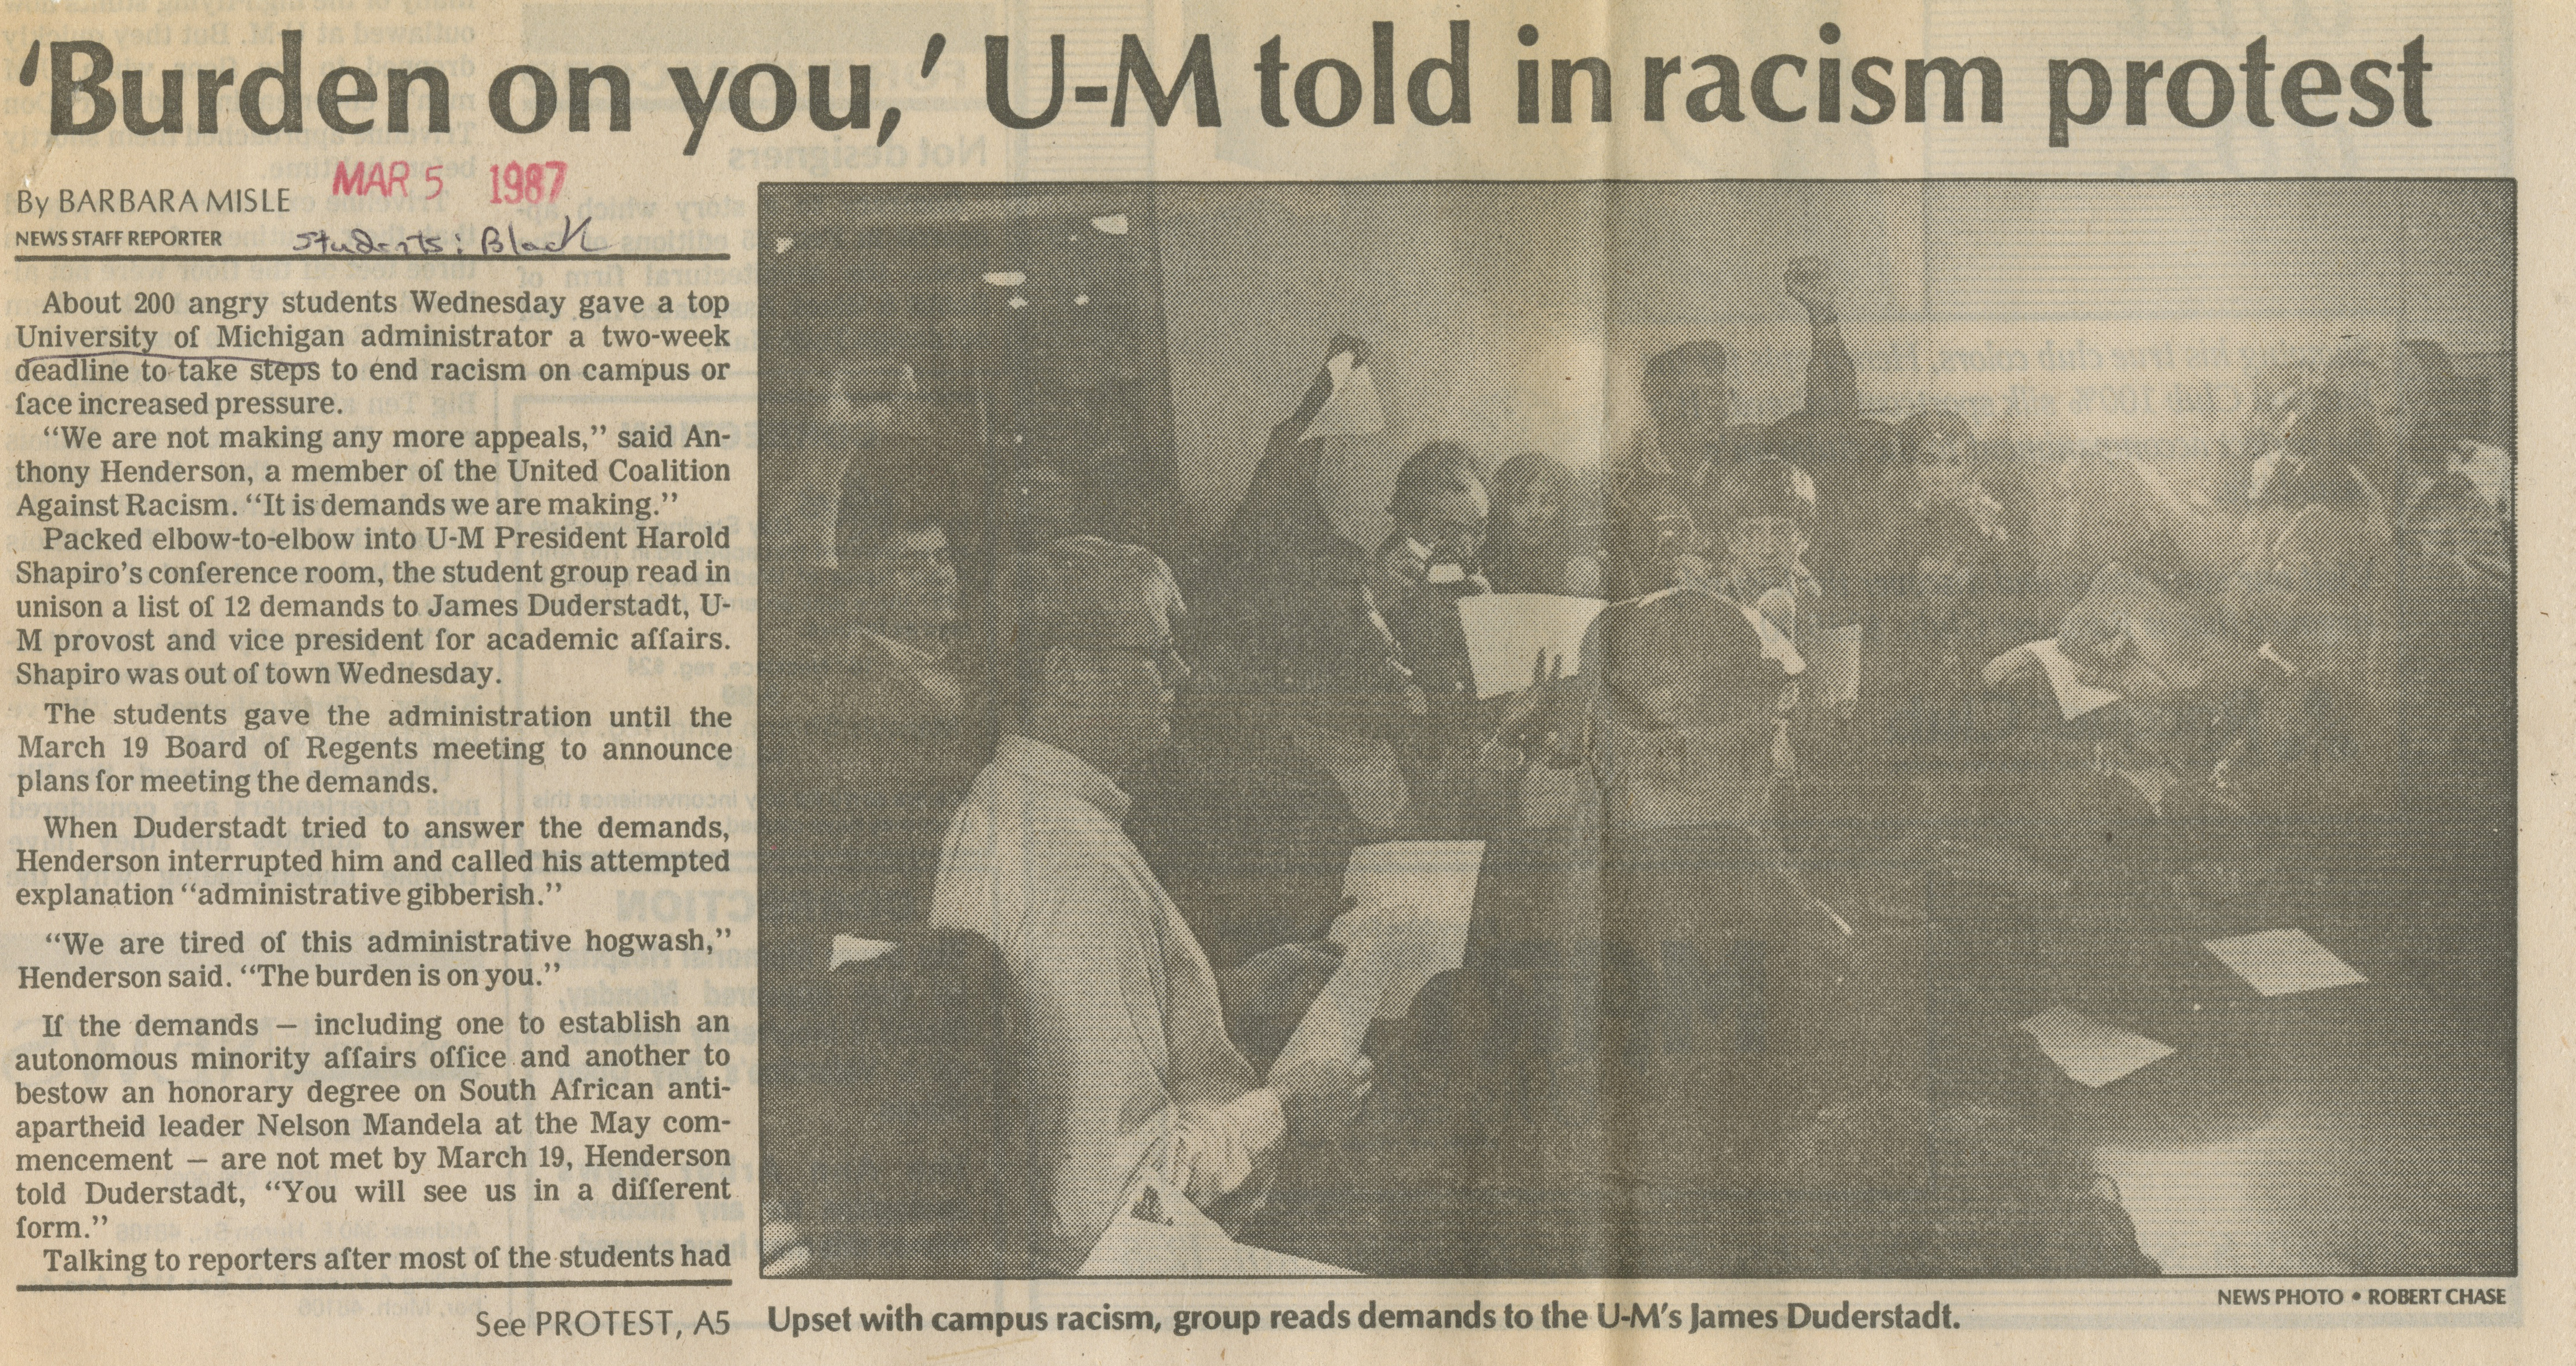 'Burden On You,' U-M Told In Racism Protest image